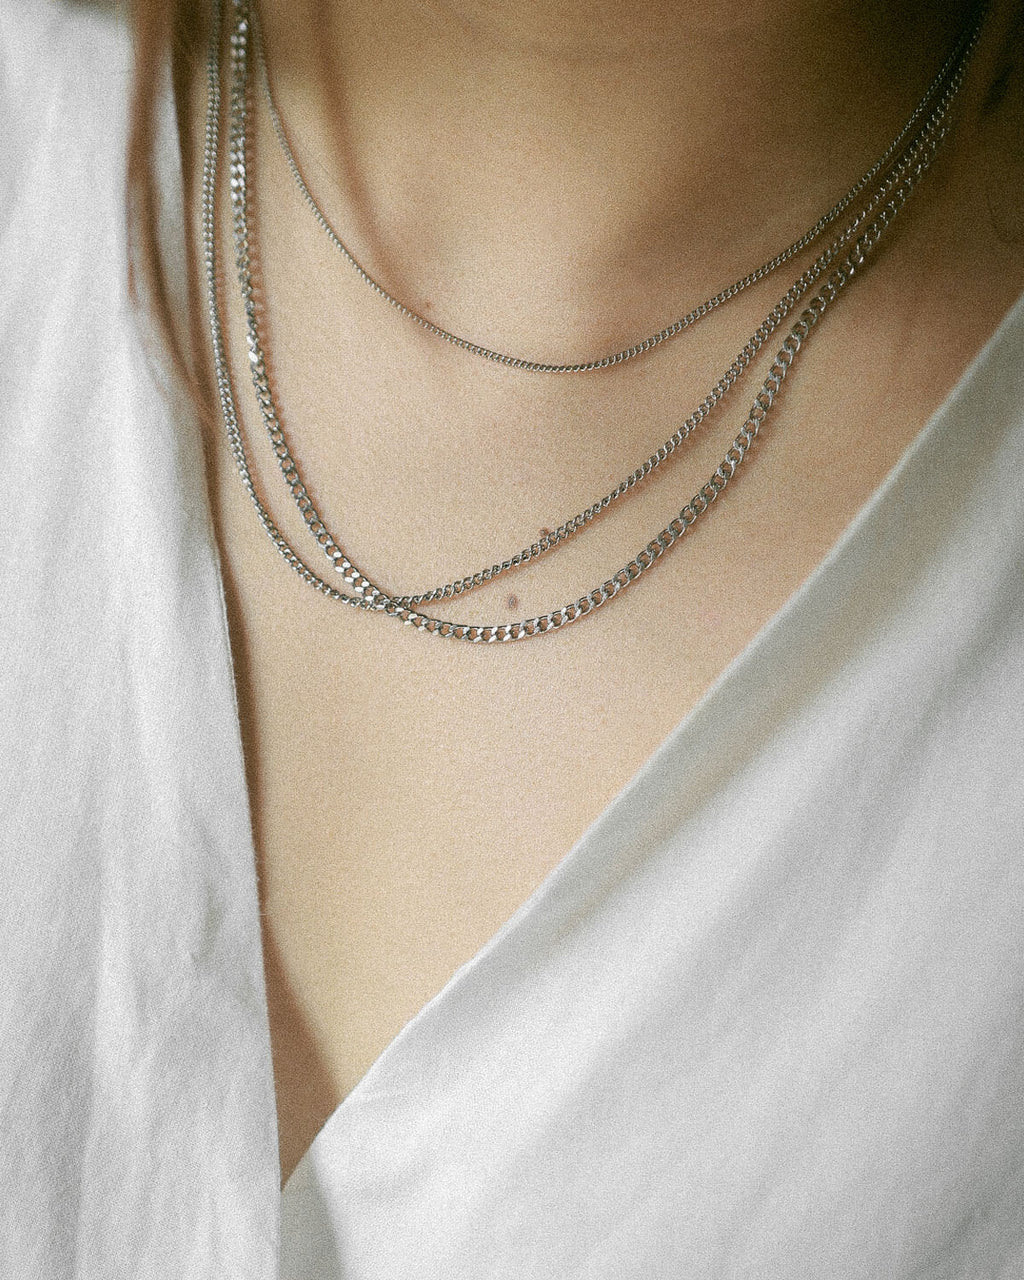 Perfect neck mess featuring the Basic chains and Cuba chains in silver - The Hexad